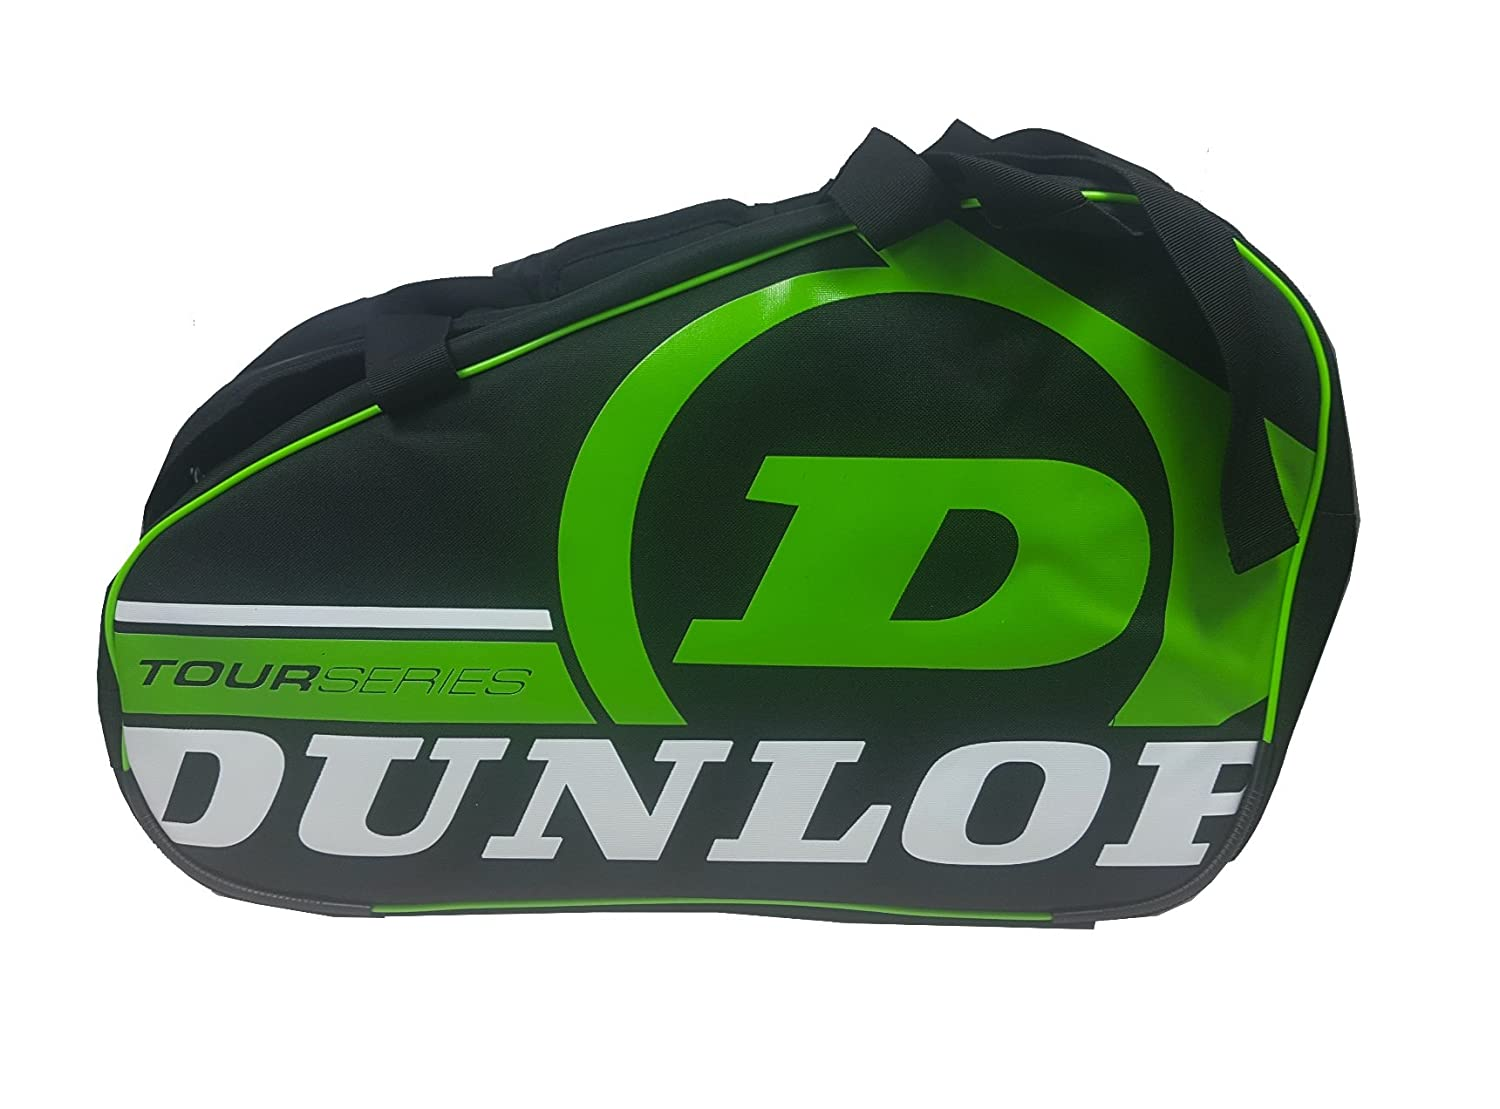 Dunlop TOUR COMPETITION - Paletero de pádel, 2017, color negro ...